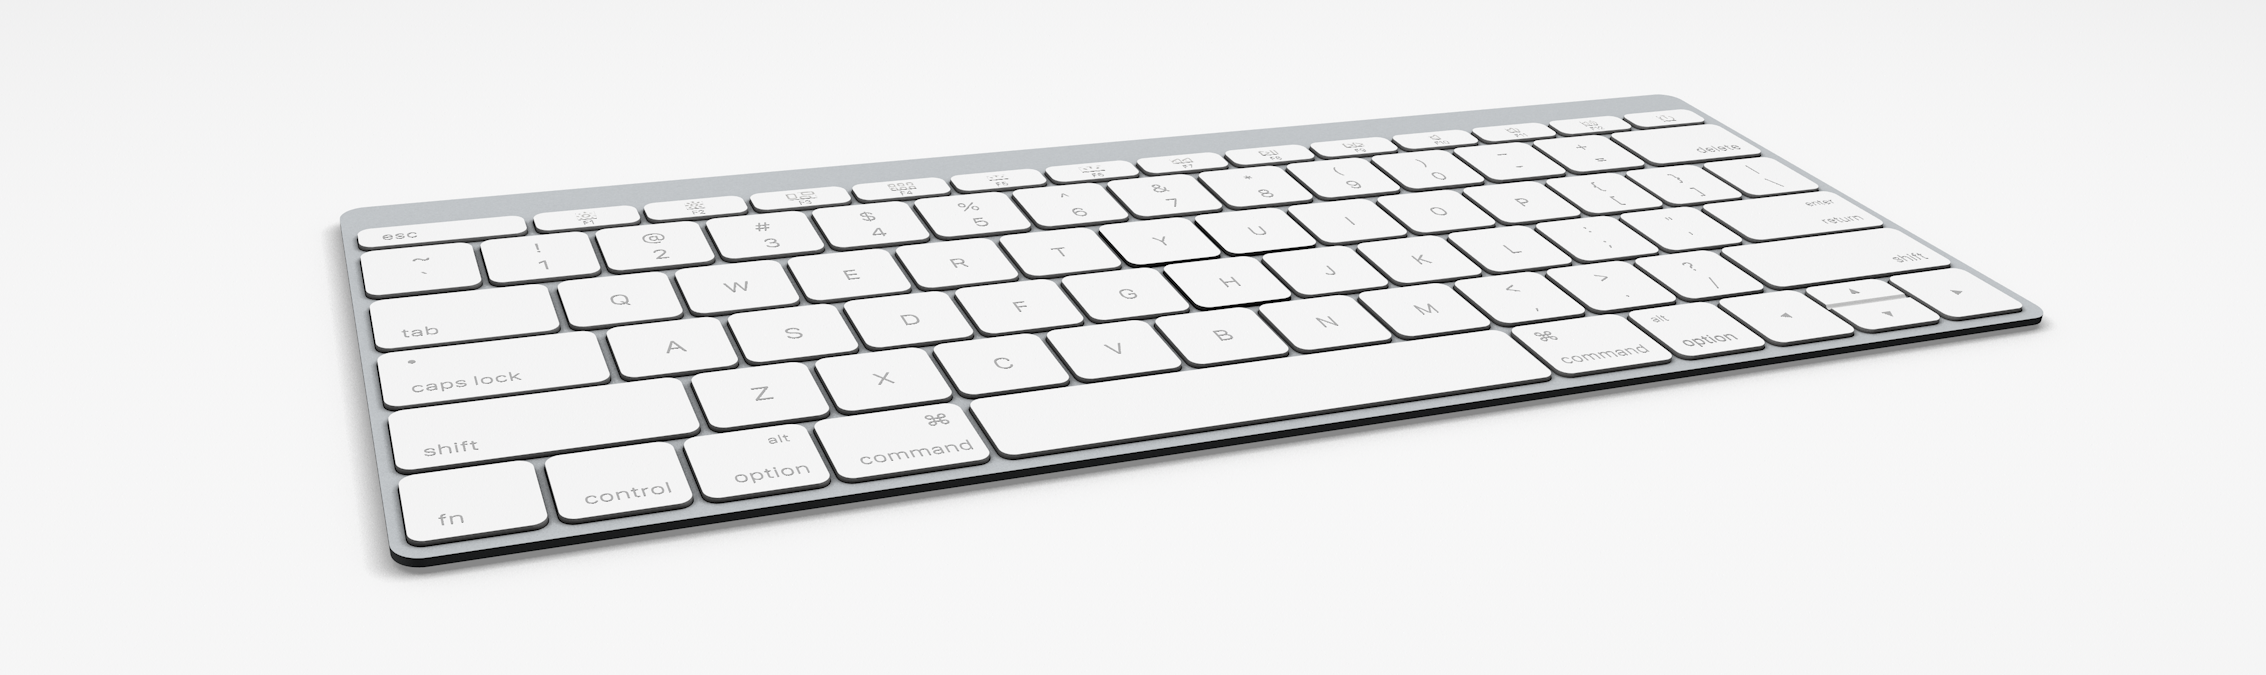 Keyboard Angle White Display